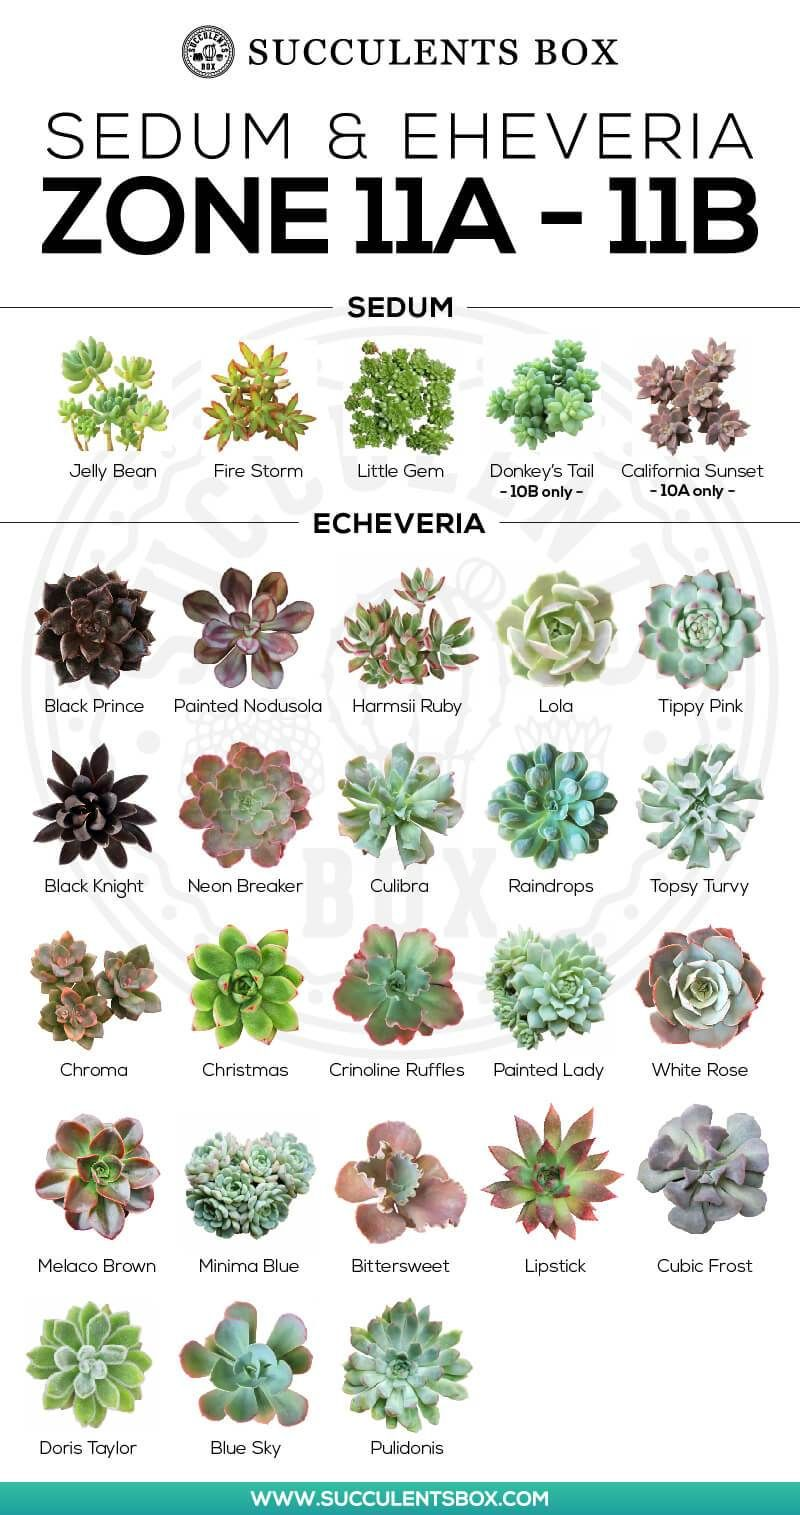 CHOOSING SUCCULENTS FOR ZONE 11 & 12 - HAWAII AND PUERTO RICO